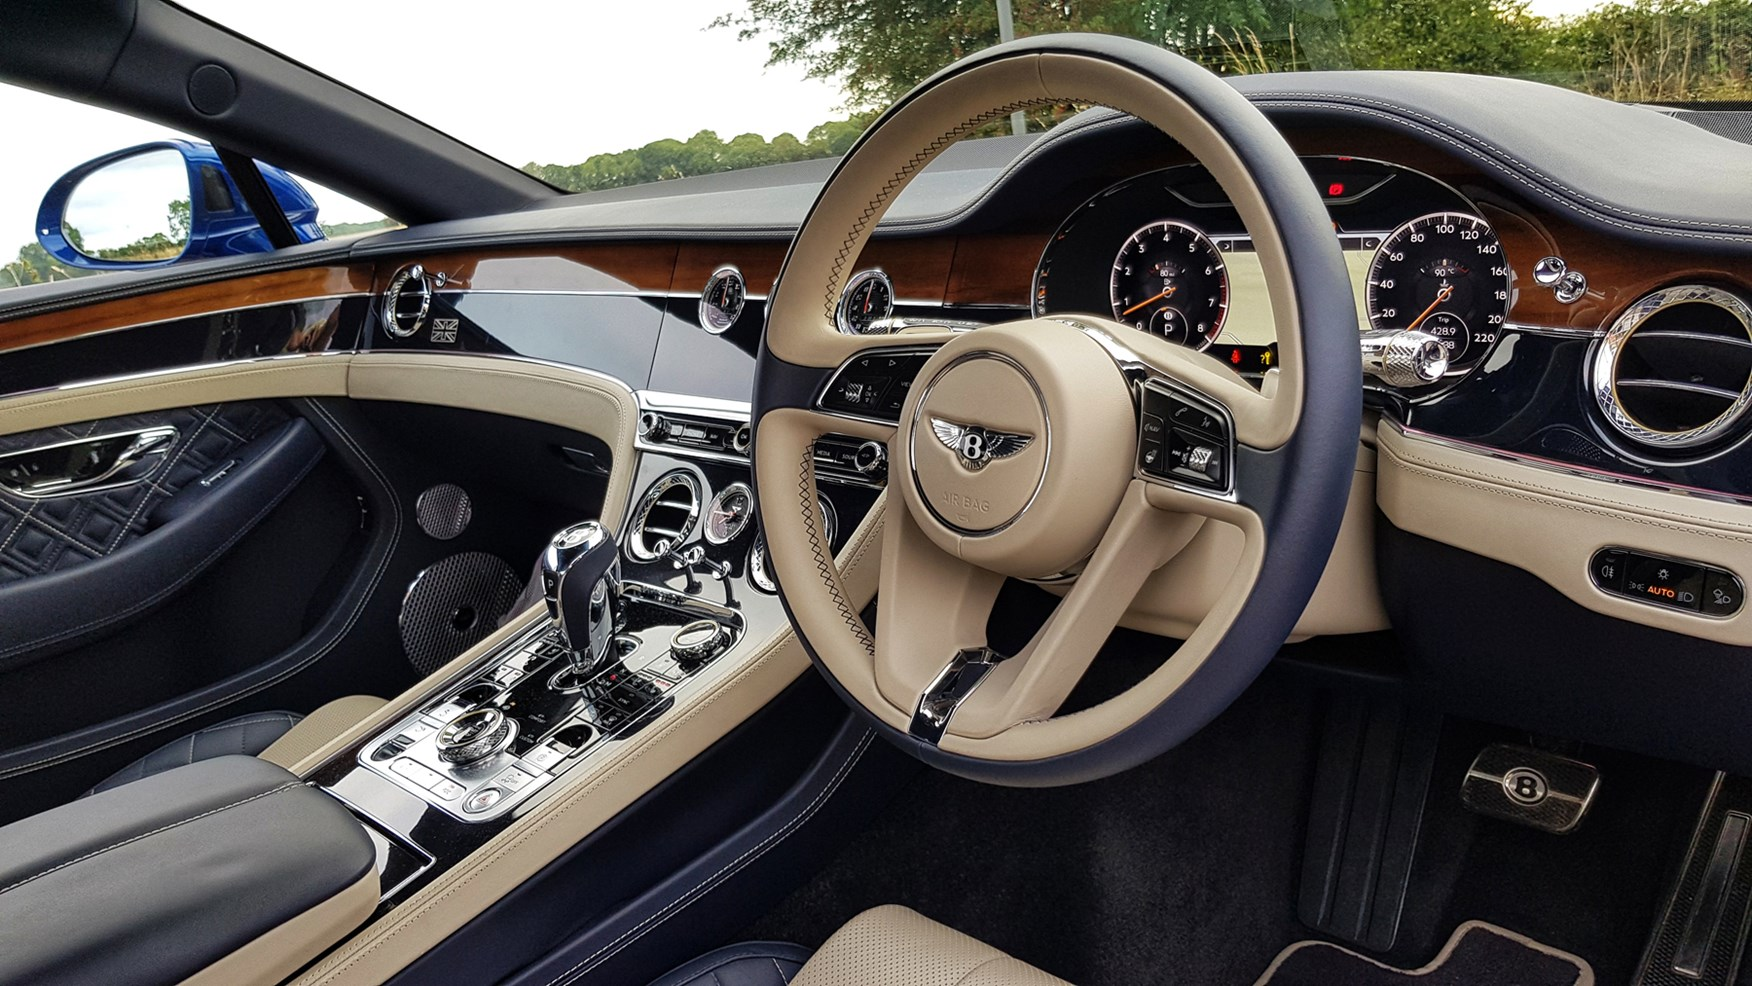 Bentley Continental Gt 2021 Interior Layout Dashboard Infotainment Parkers